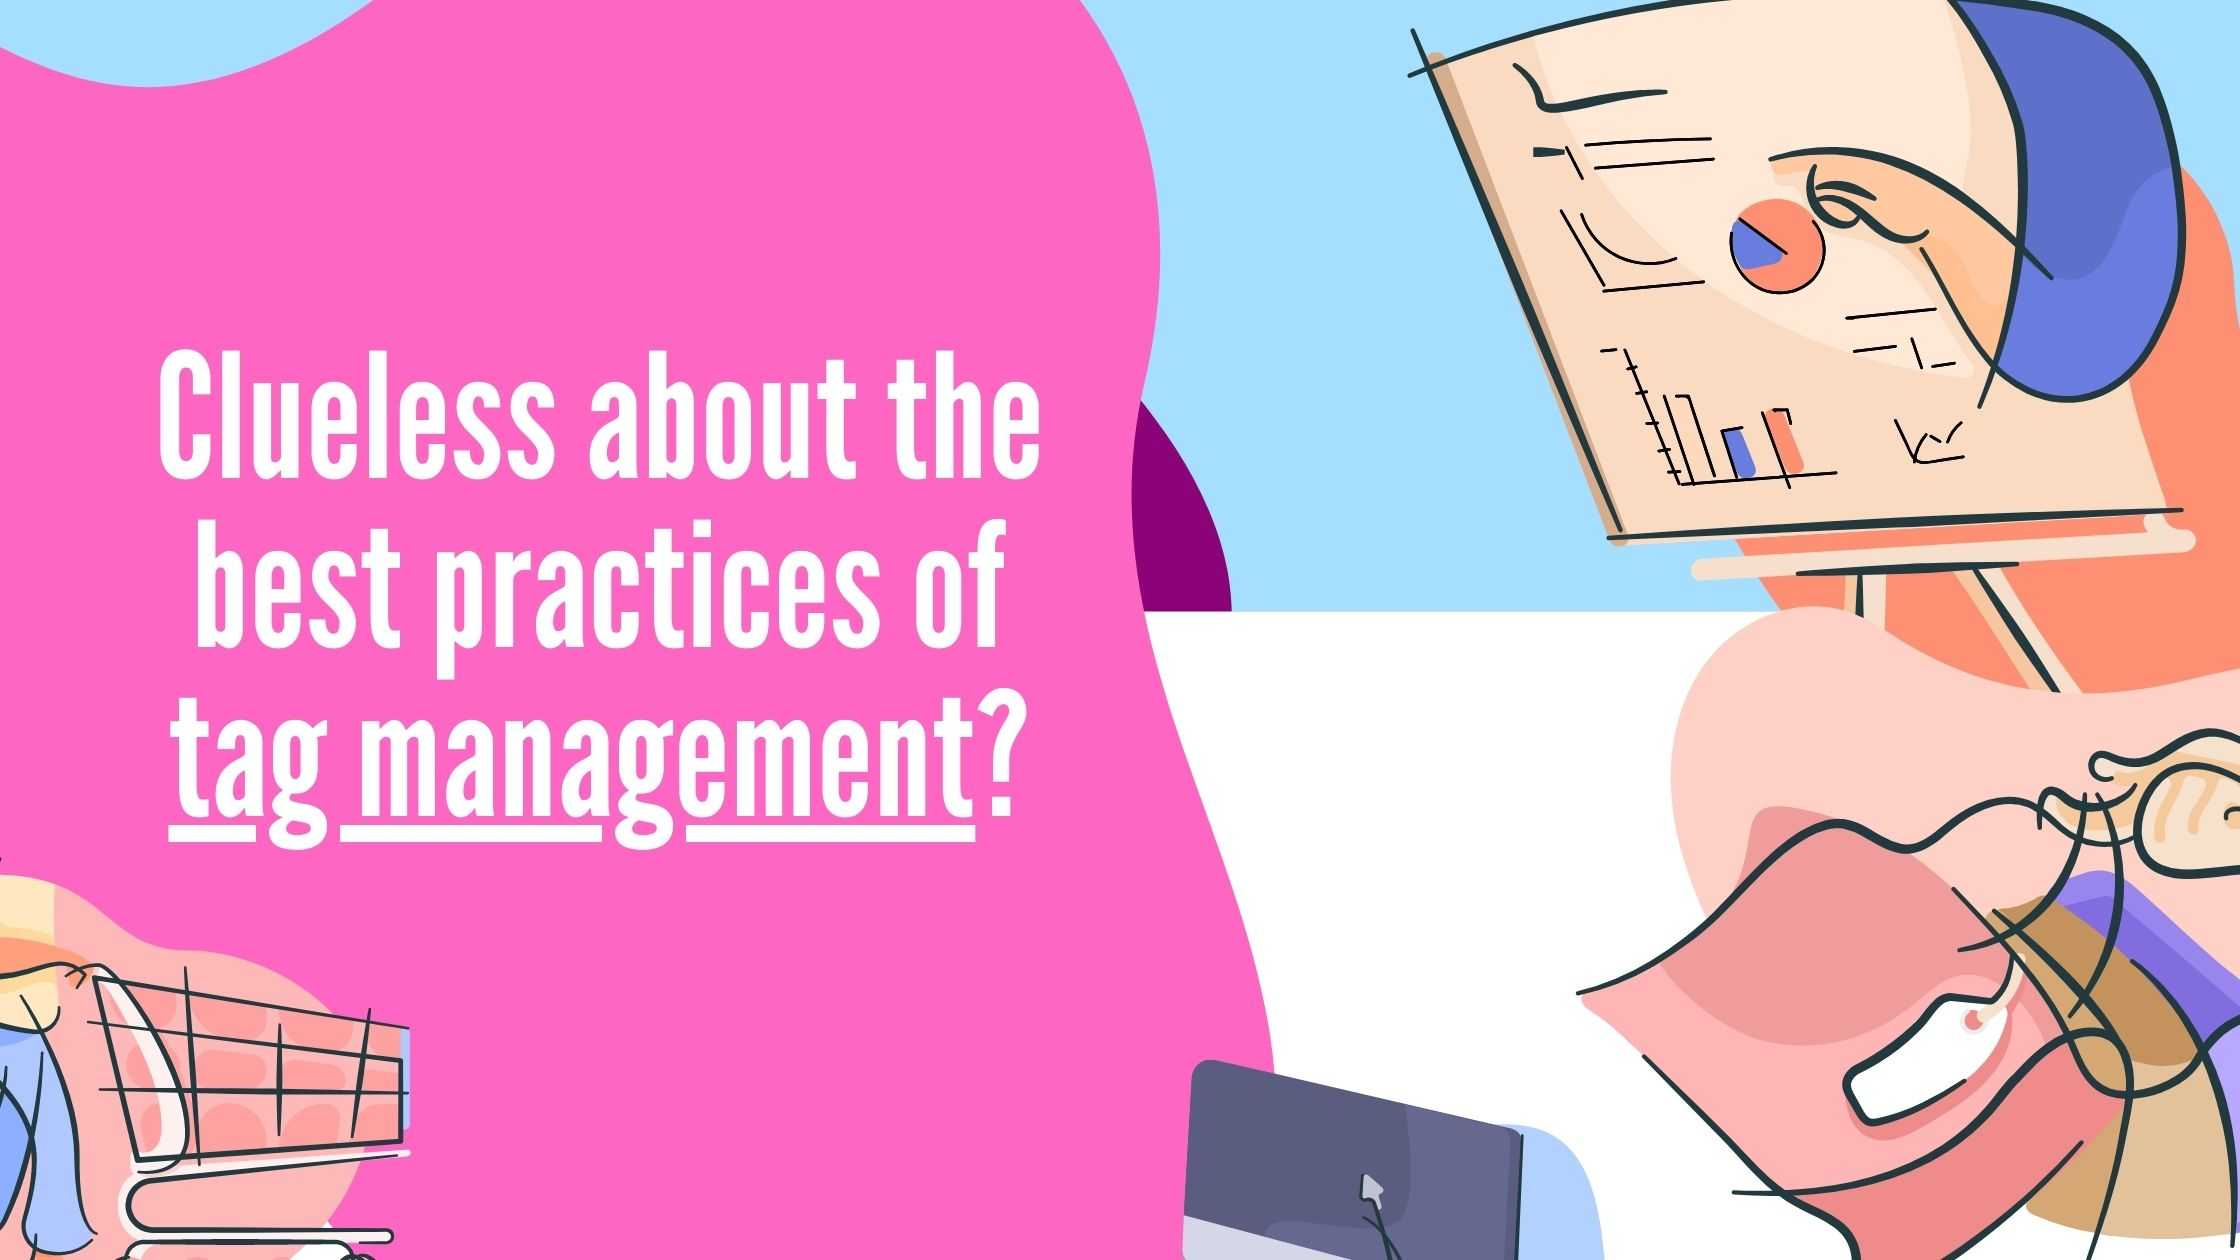 Best practices of Tag management